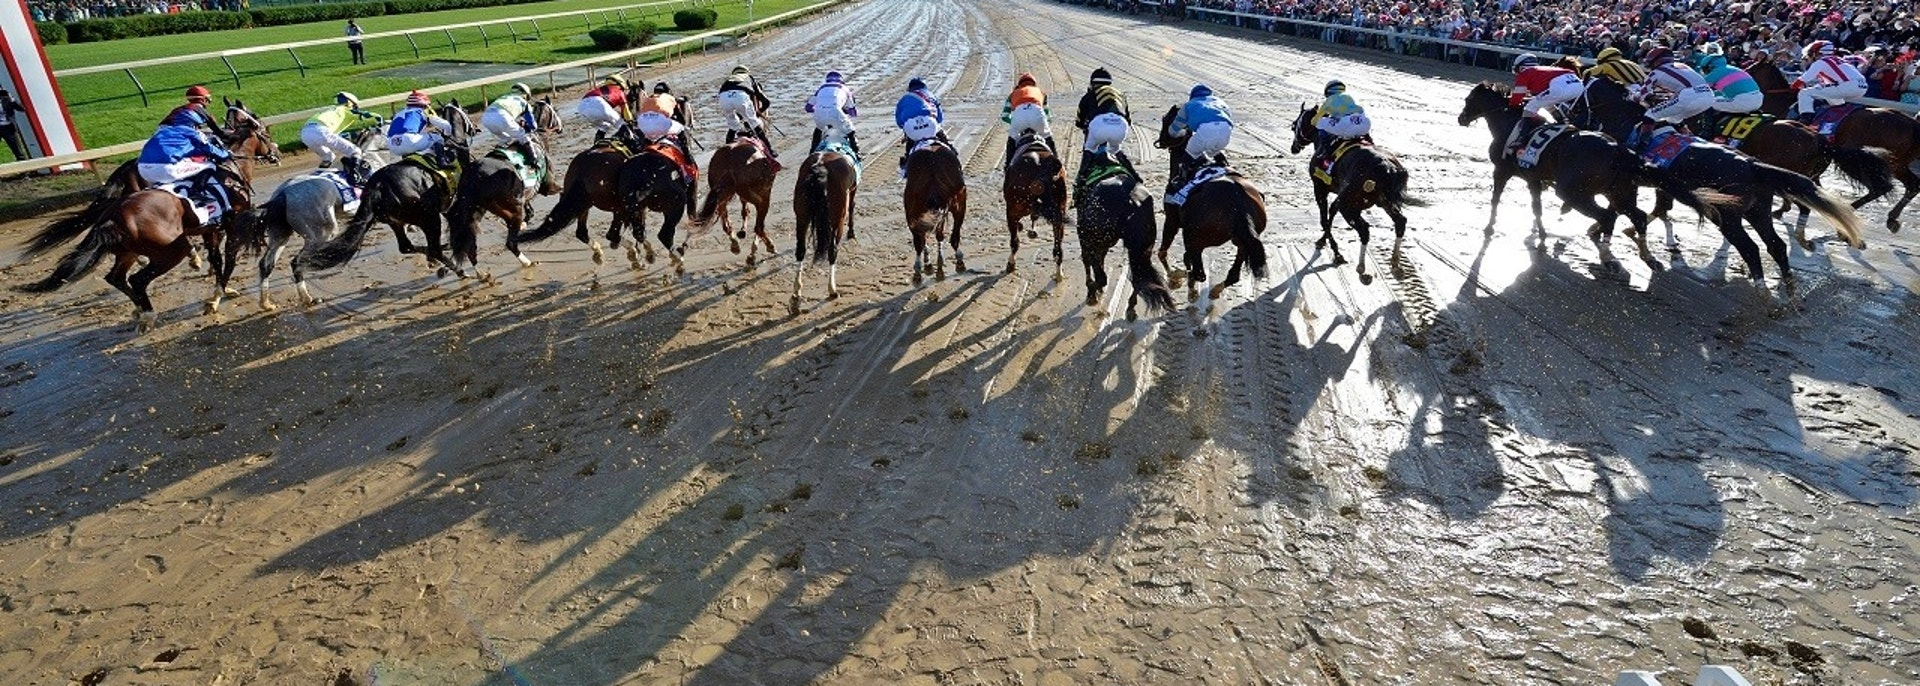 May 6, 2017; Louisville , KY, USA; Horses break from the starting gates during the 2017 Kentucky Derby at Churchill Downs. Mandatory Credit: Jamie Rhodes-USA TODAY Sports - 10045775